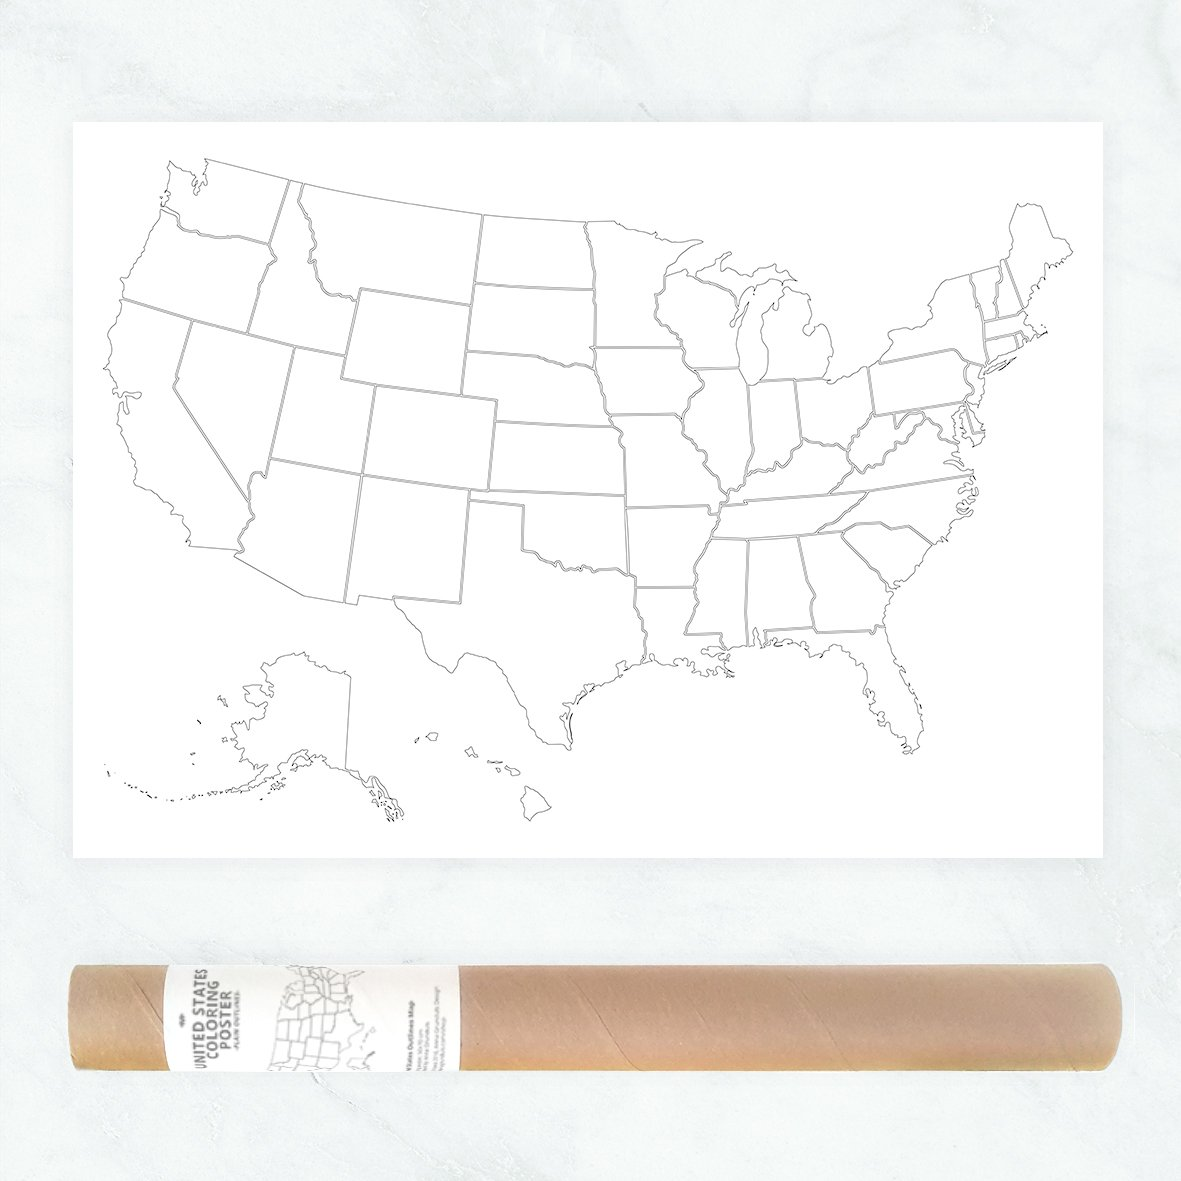 Map Of The United States To Color.Amazon Com Large Coloring Poster With A Plain Outlines Map Of Usa